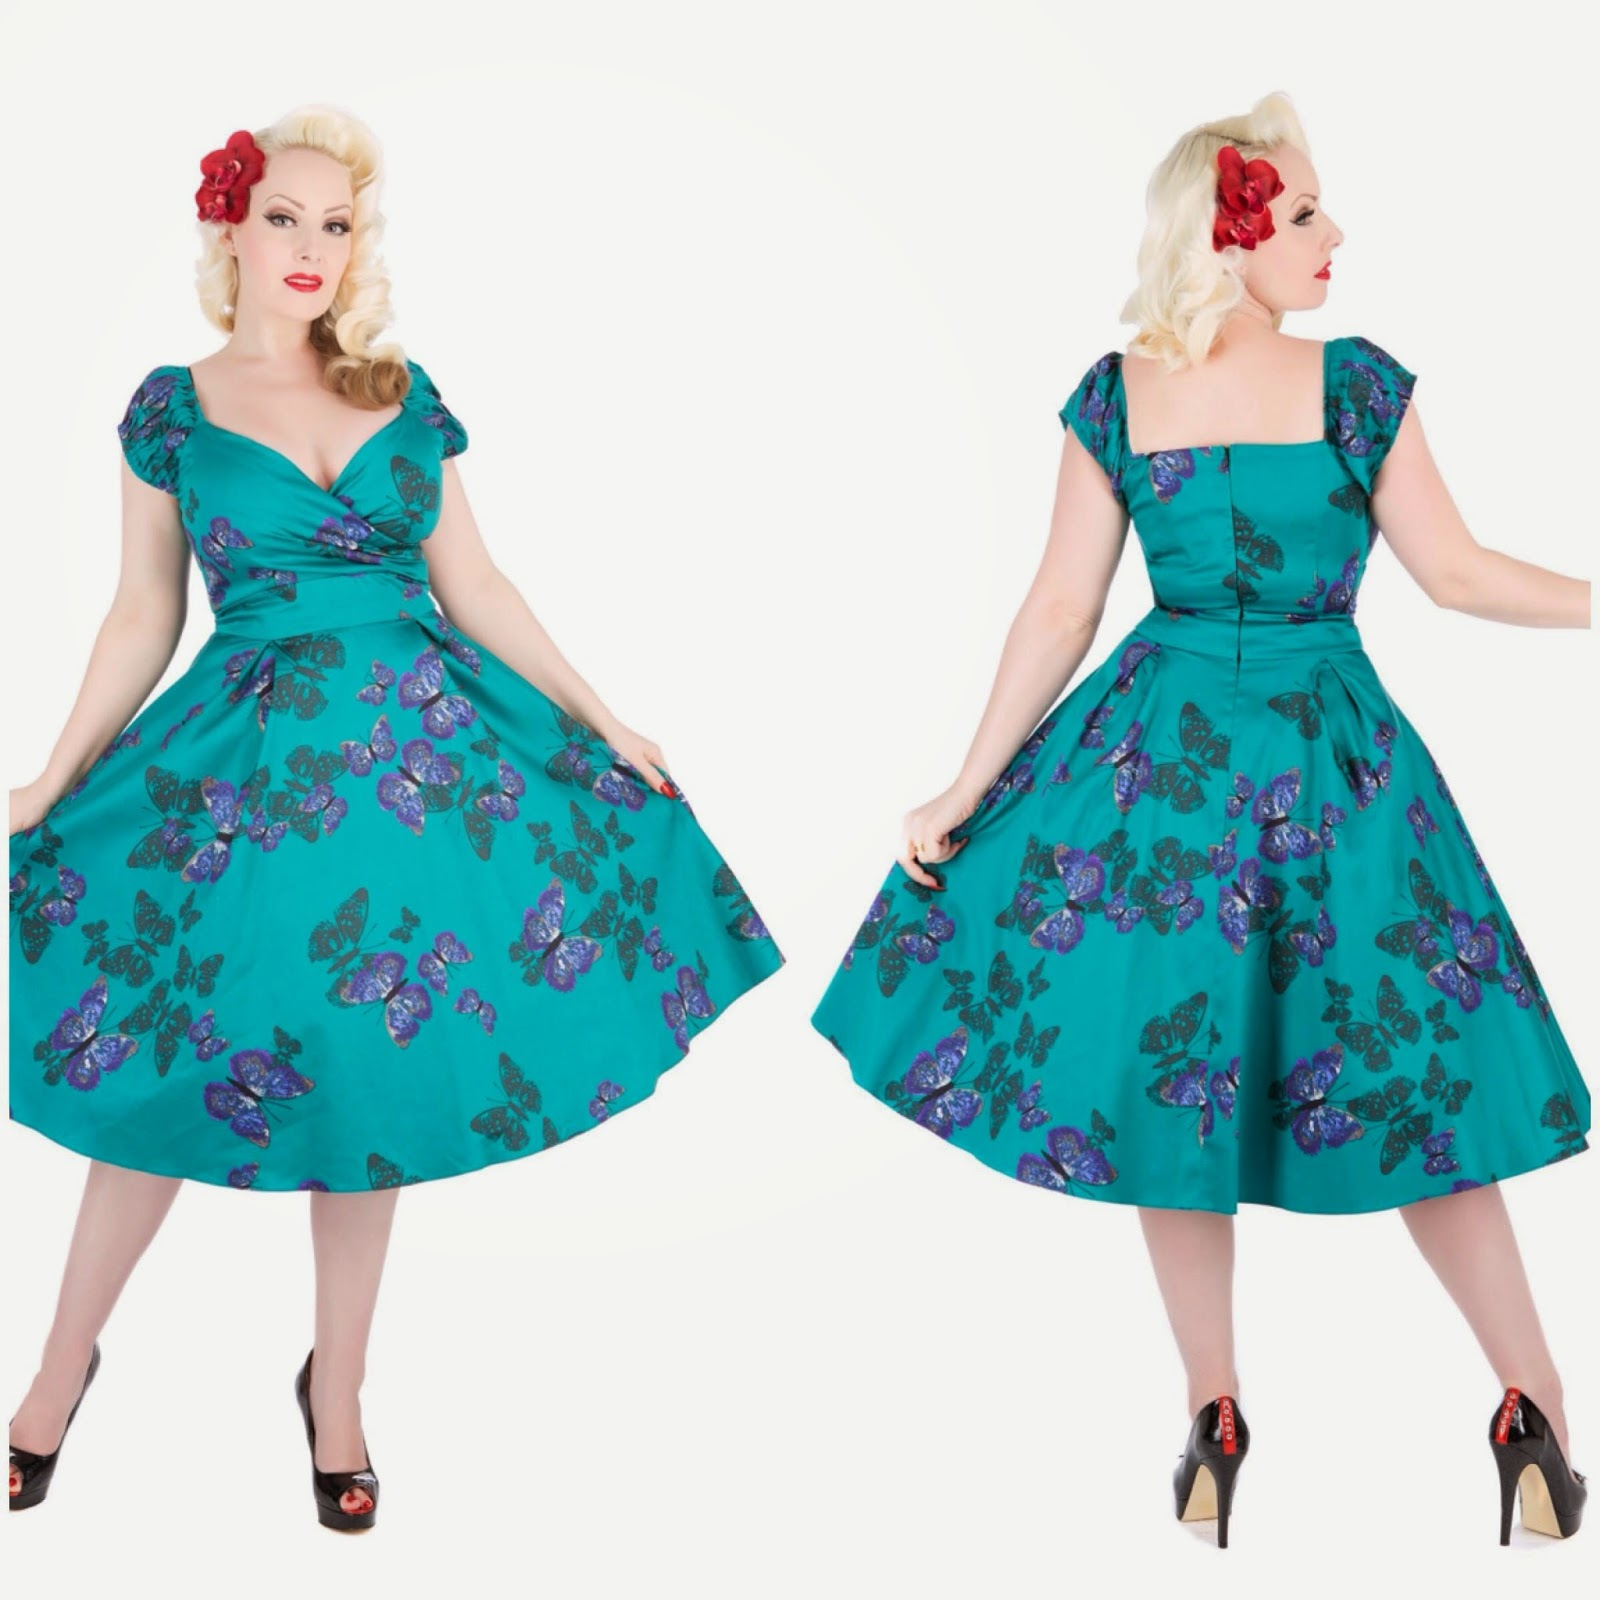 Lady V London Dress Teal Butterflies